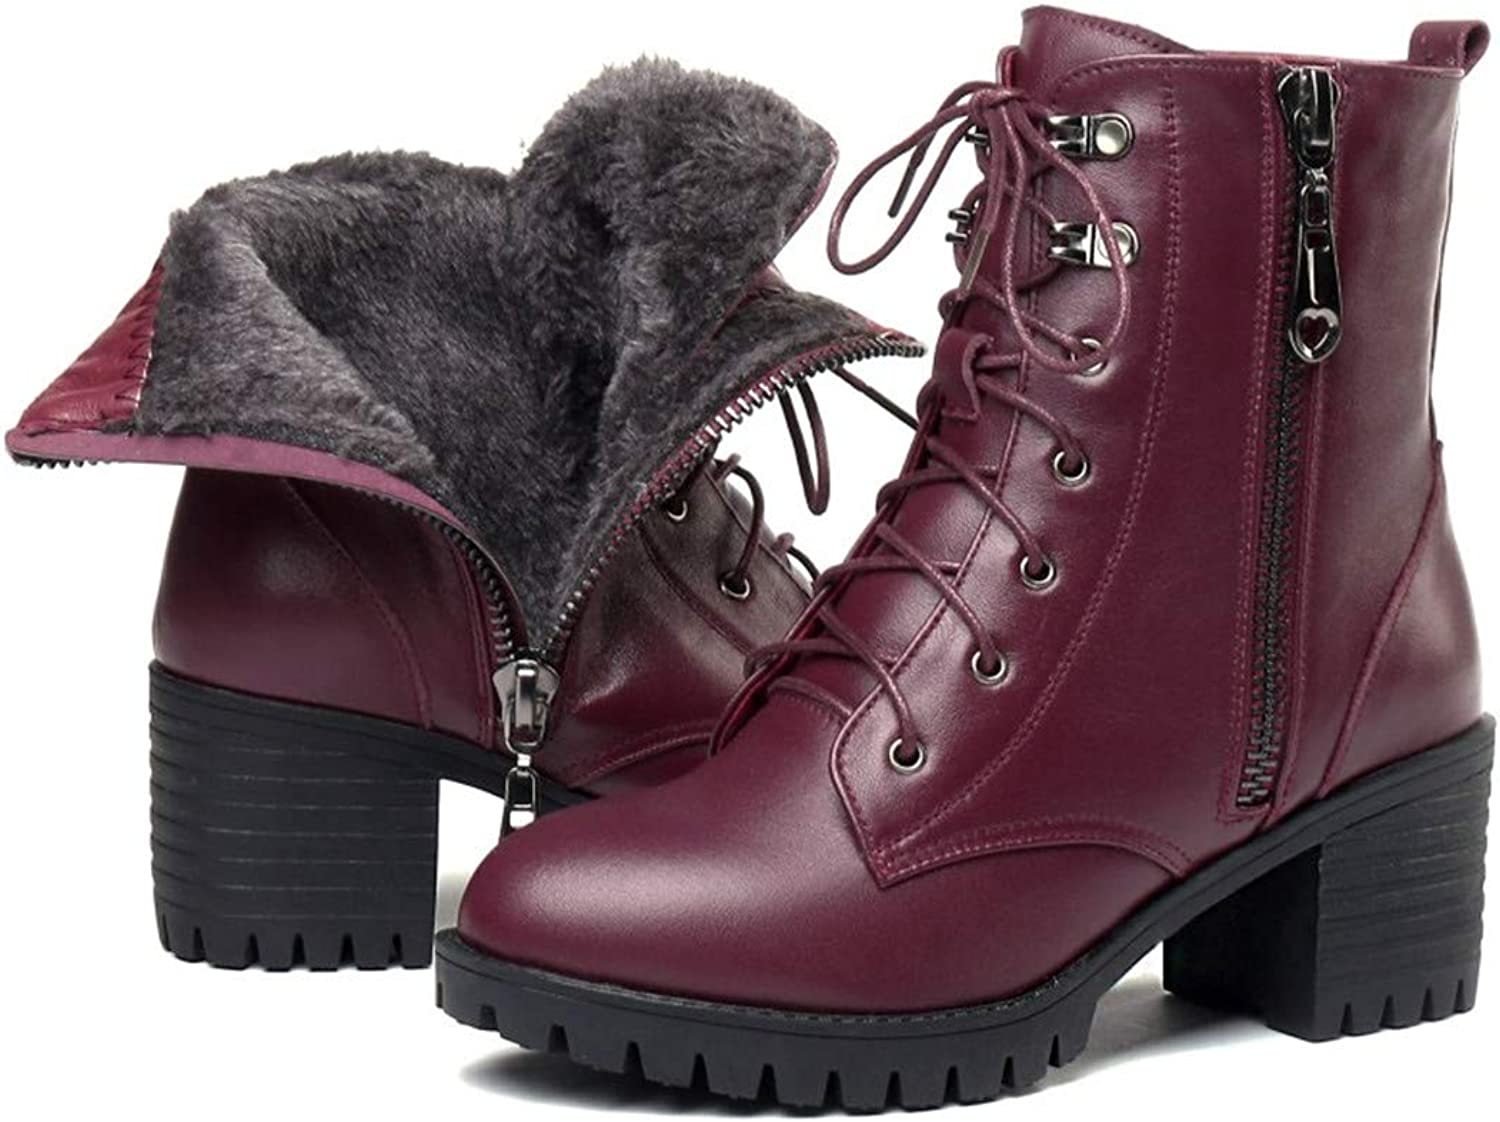 Genuine Leather Heel Women Snow Boots Wool Warm Female Winter Boots Female Military Boots